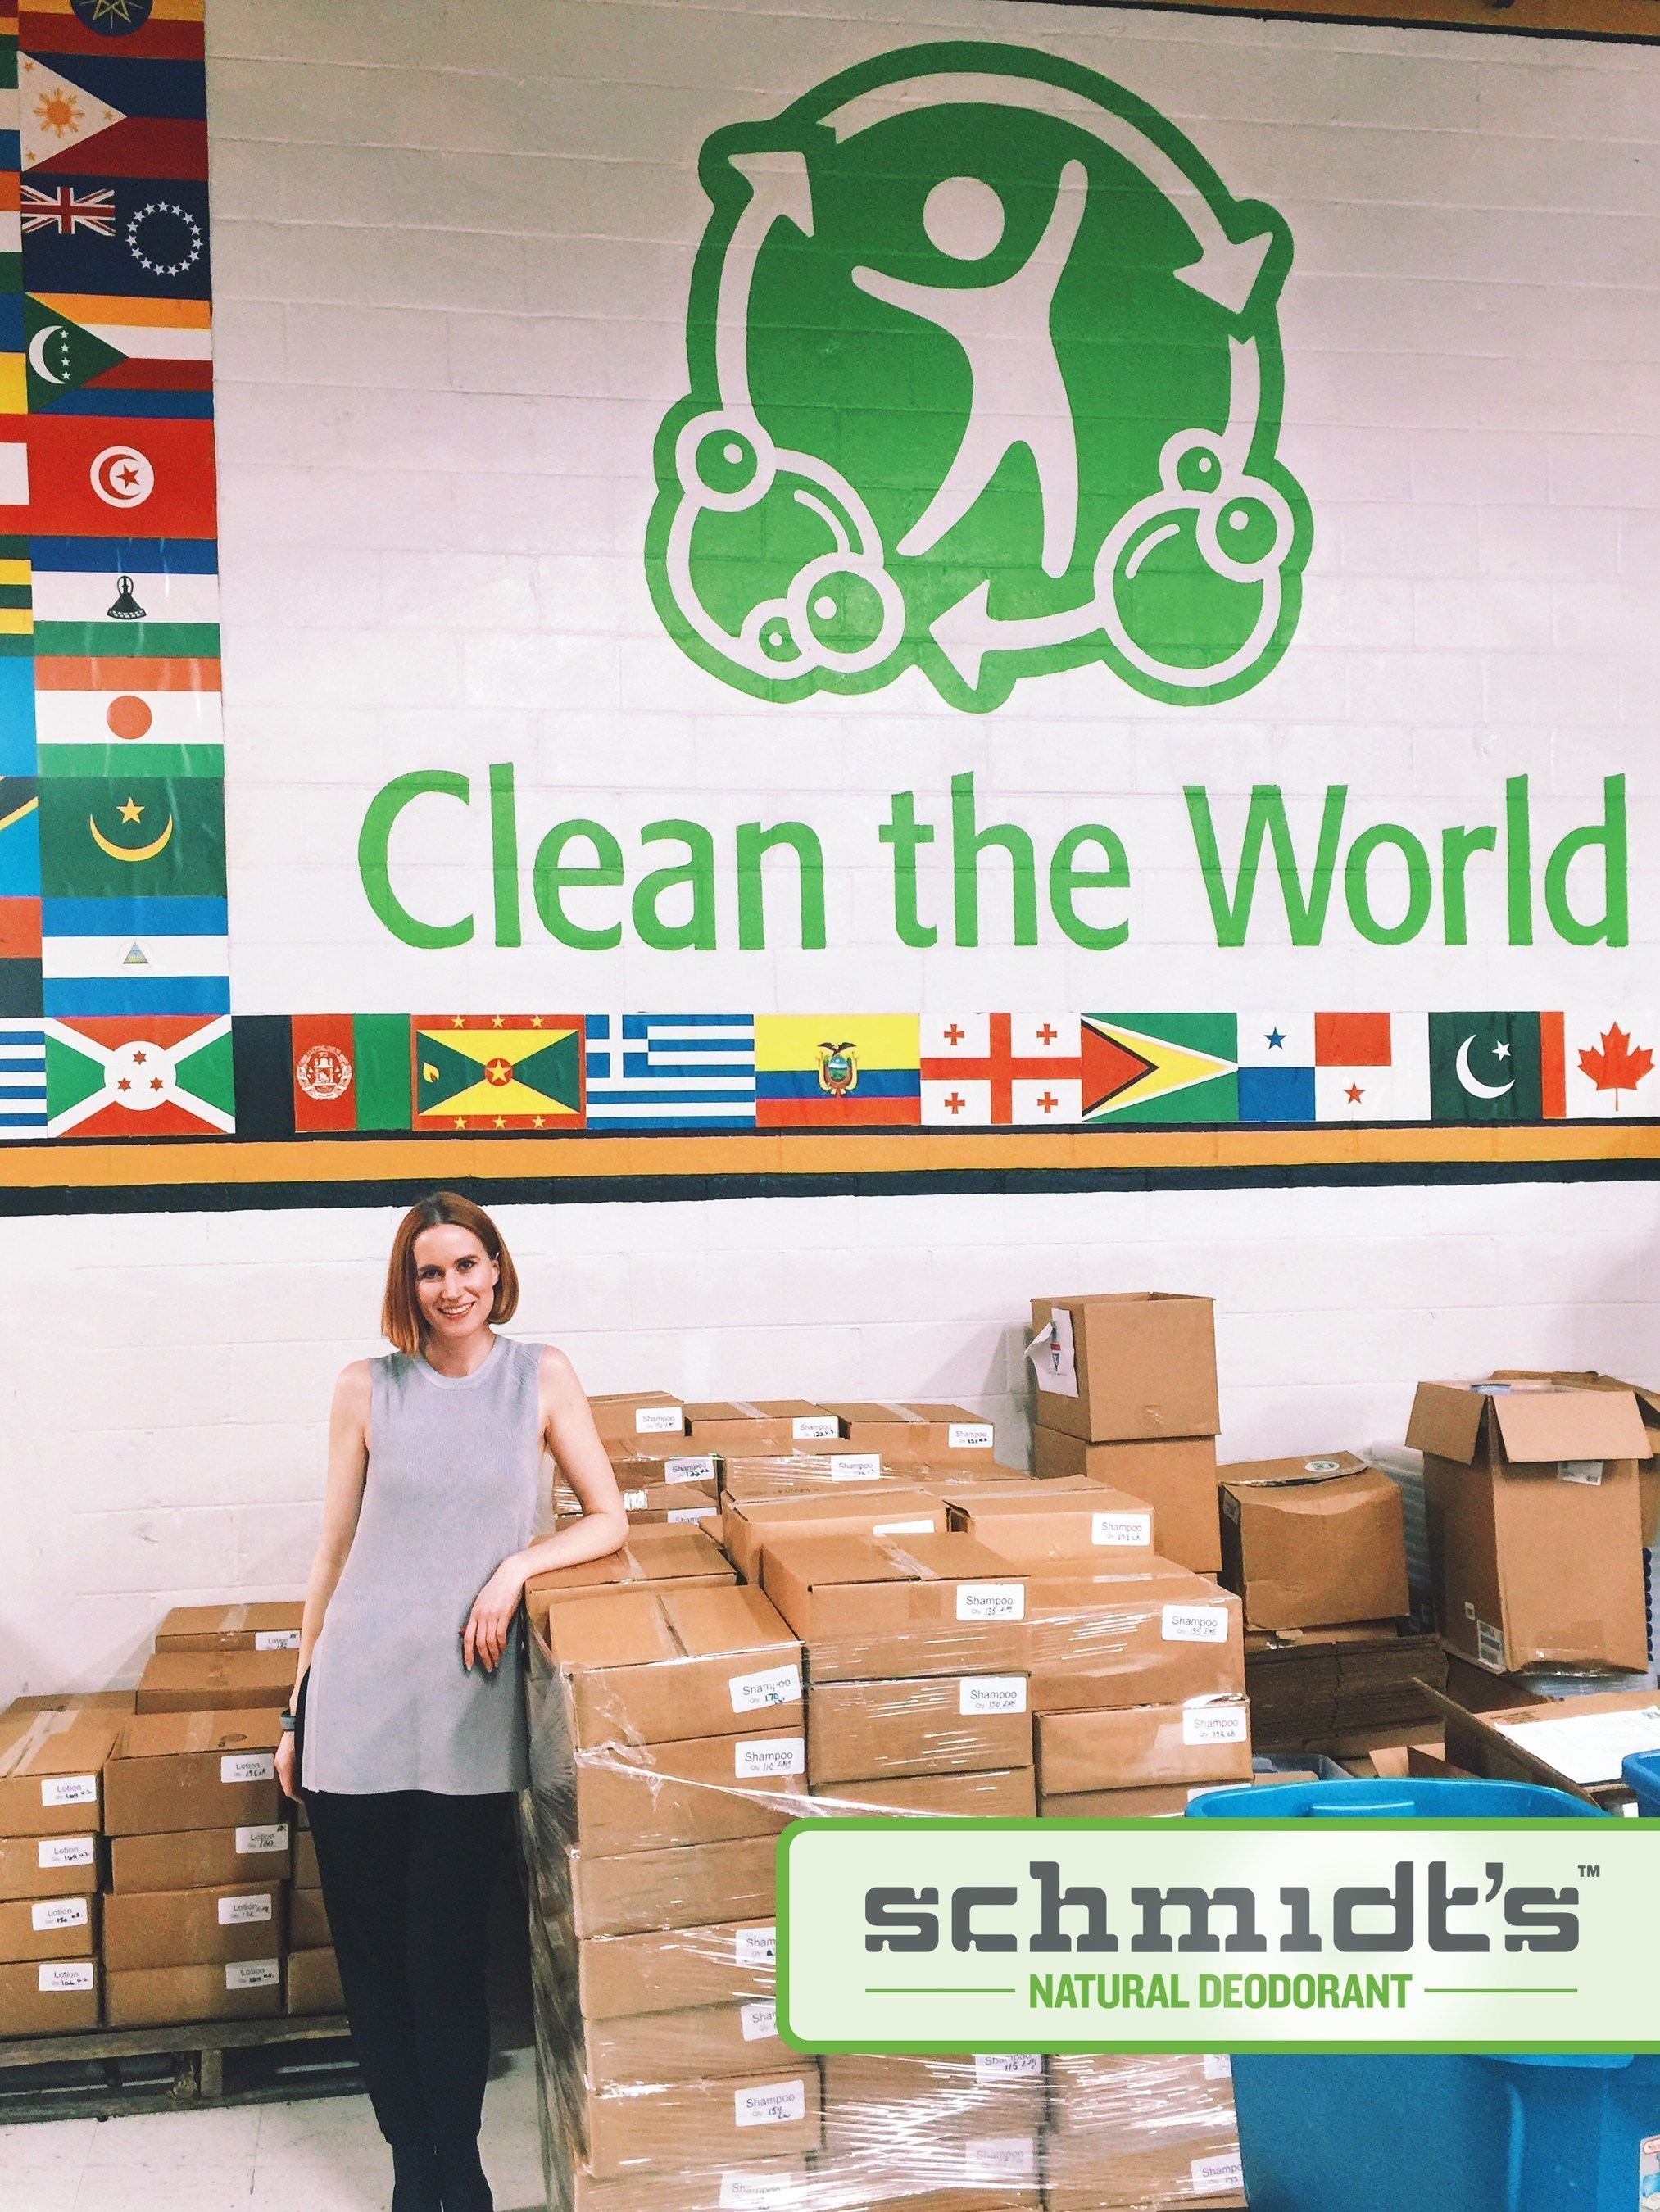 Schmidt's Natural Deodorant Celebrates Earth Day Through Partnership With Nonprofit Clean the World